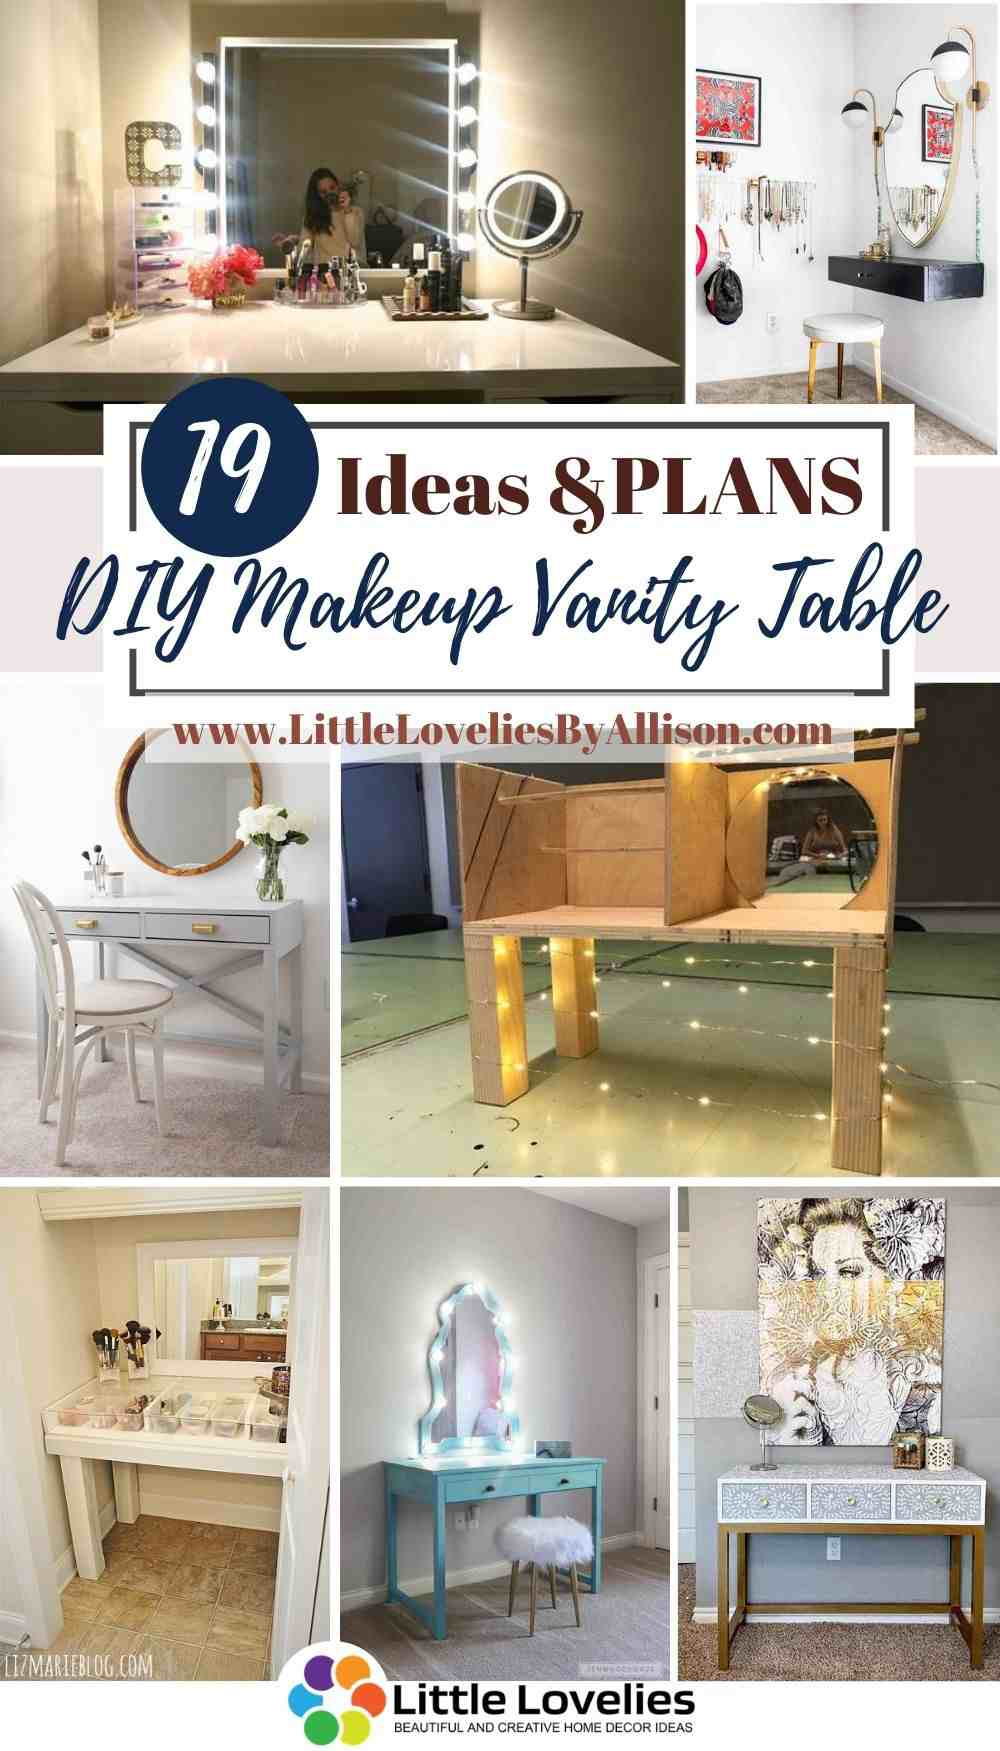 19 Diy Makeup Vanity Table Ideas That You Can Make Easily